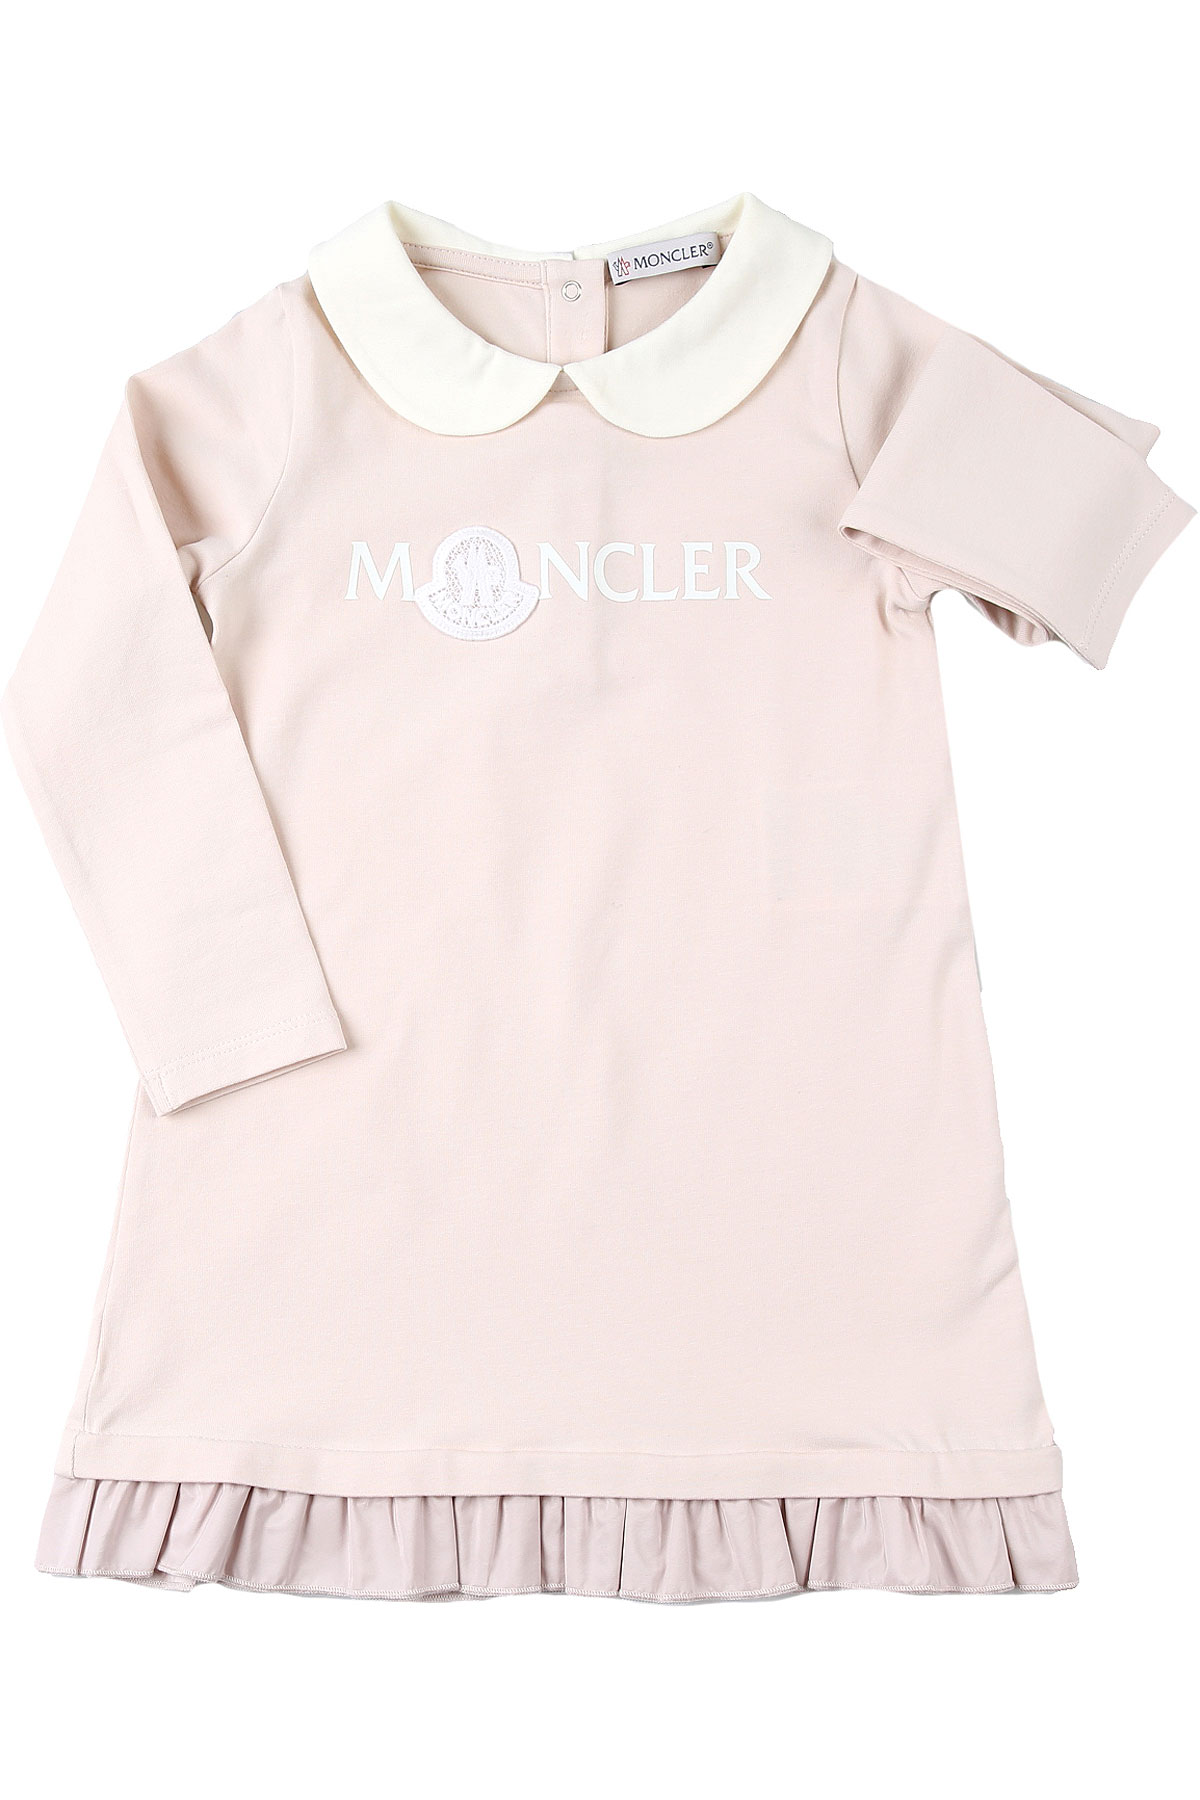 Moncler Baby Dress for Girls On Sale, Pink, Cotton, 2019, 2Y 3Y